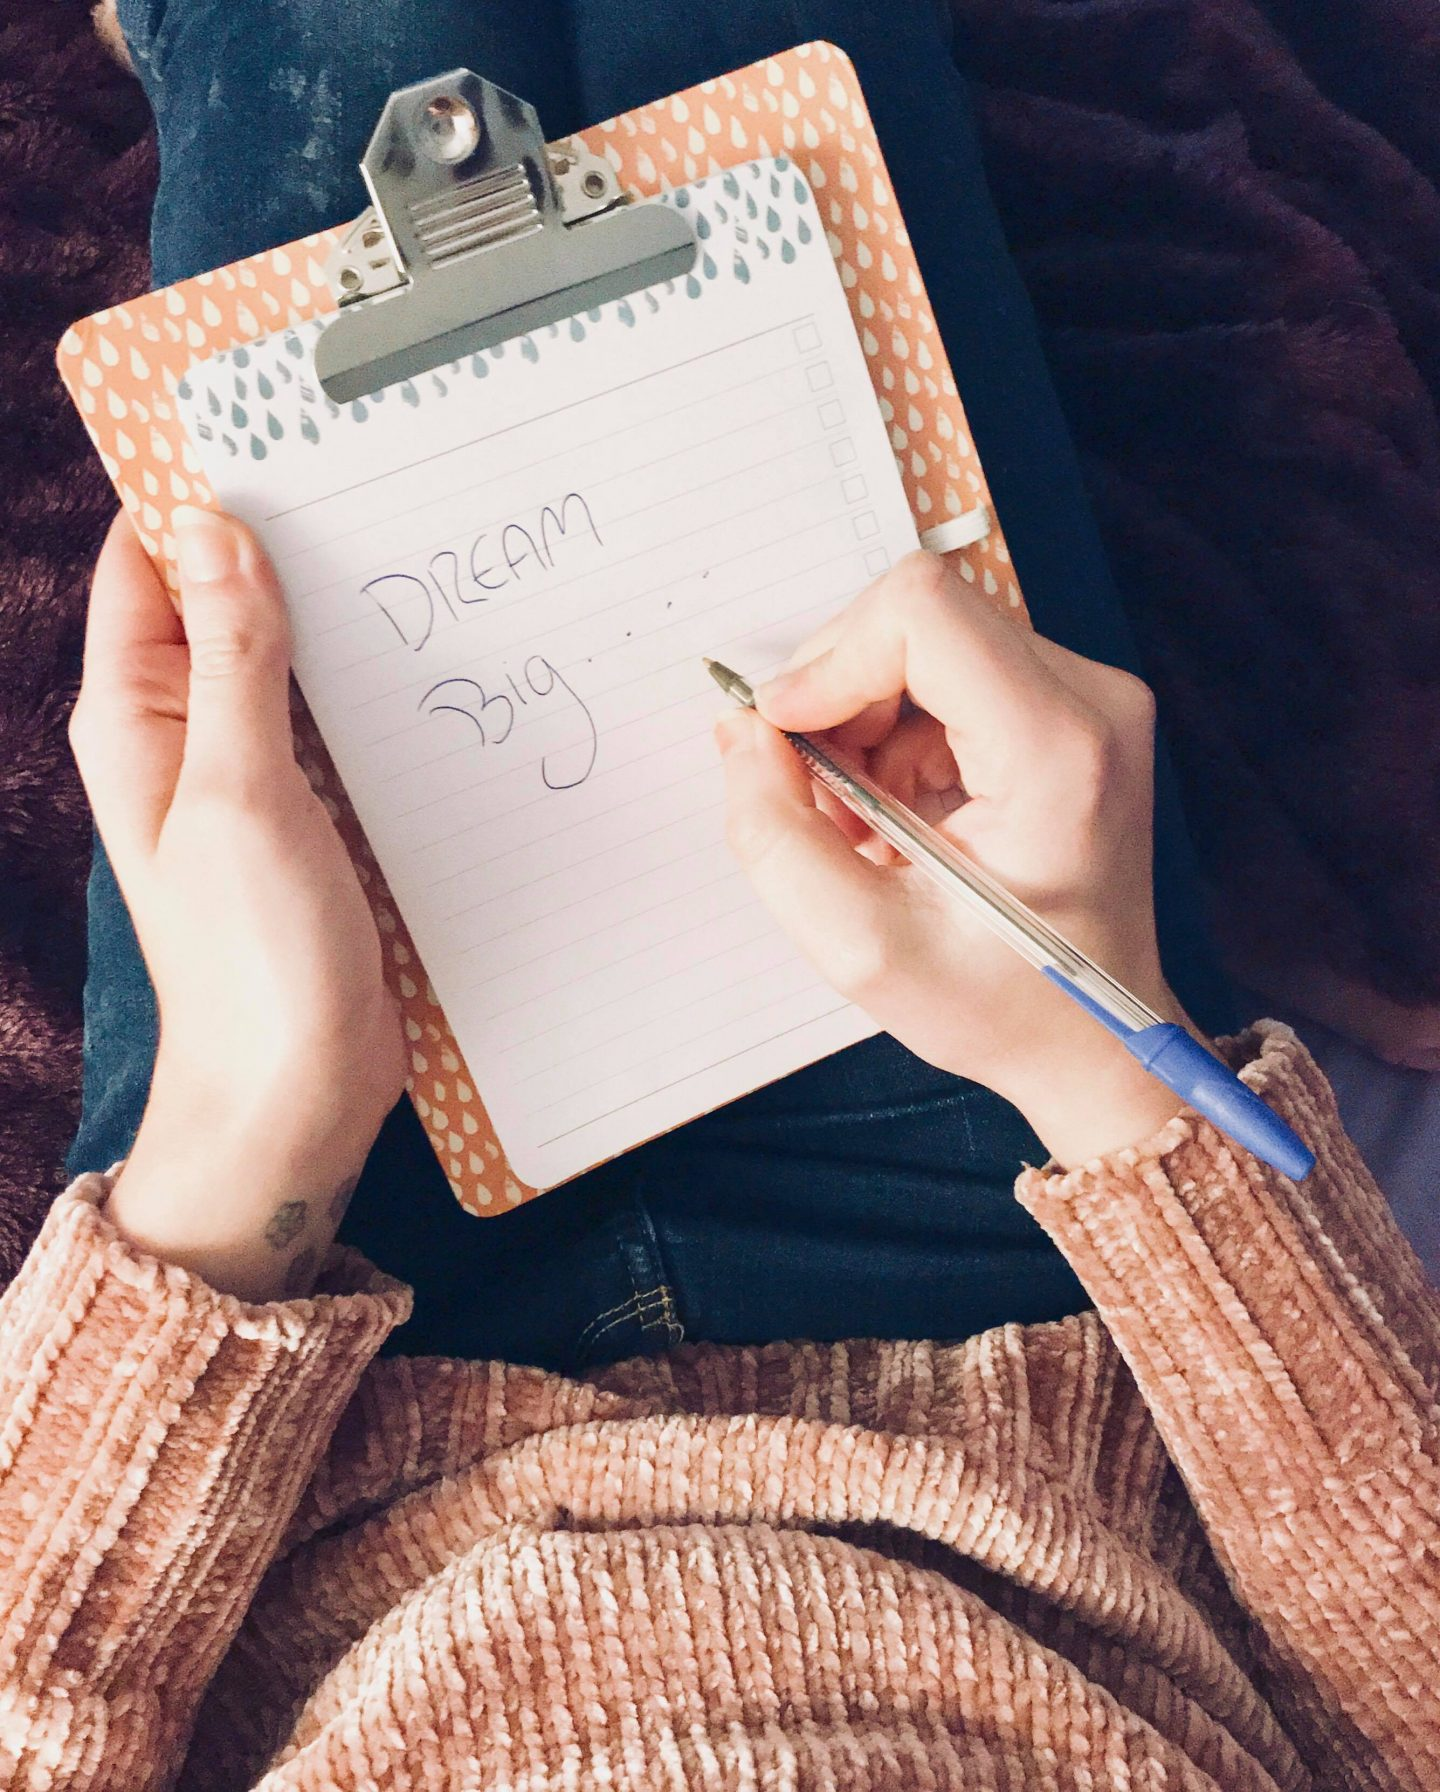 Life goals and blog dreams for 2018